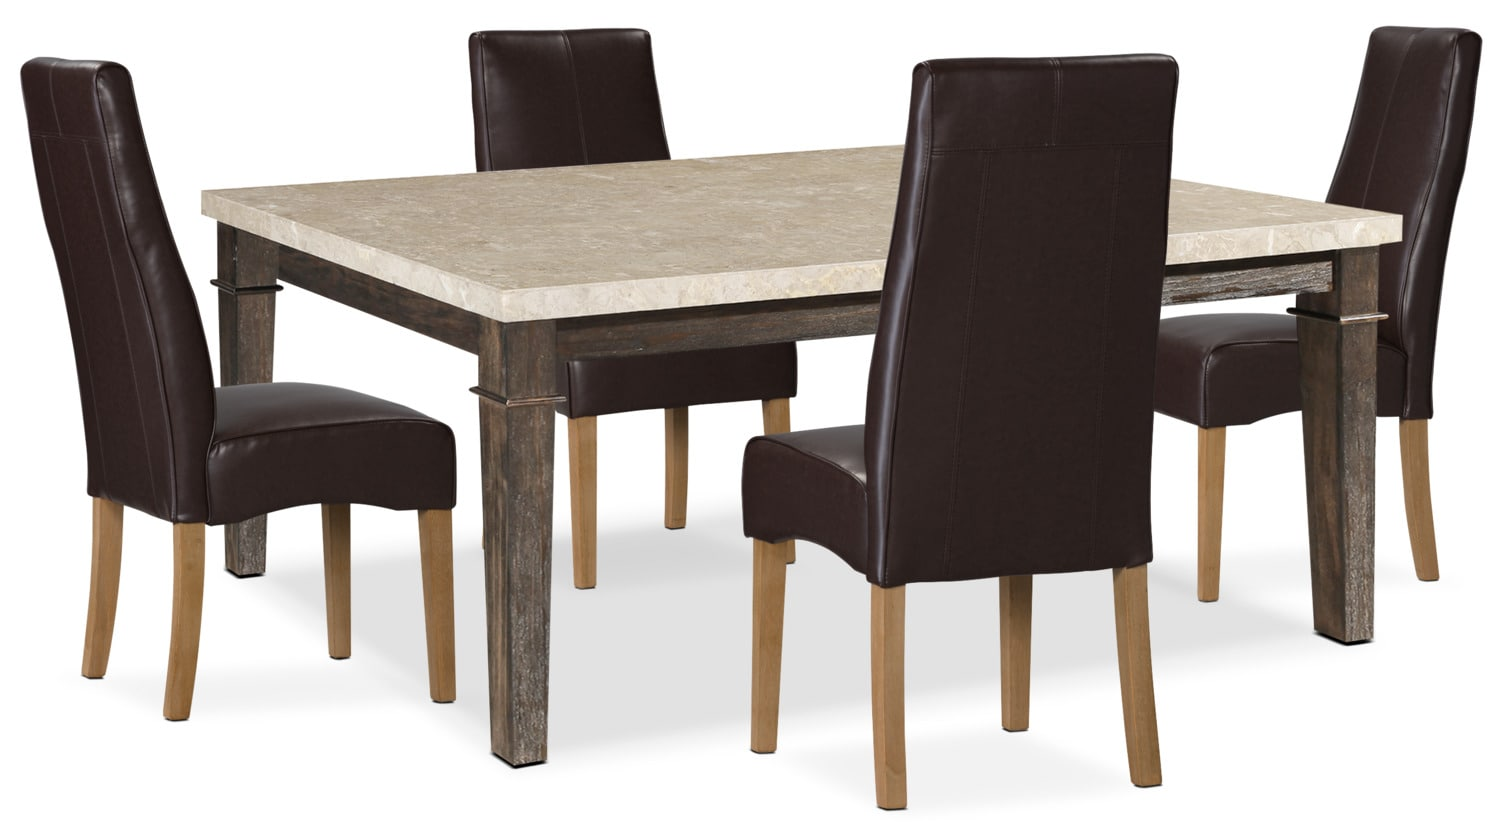 Aldo 5-Piece Dining Package with Colby Dining Chairs